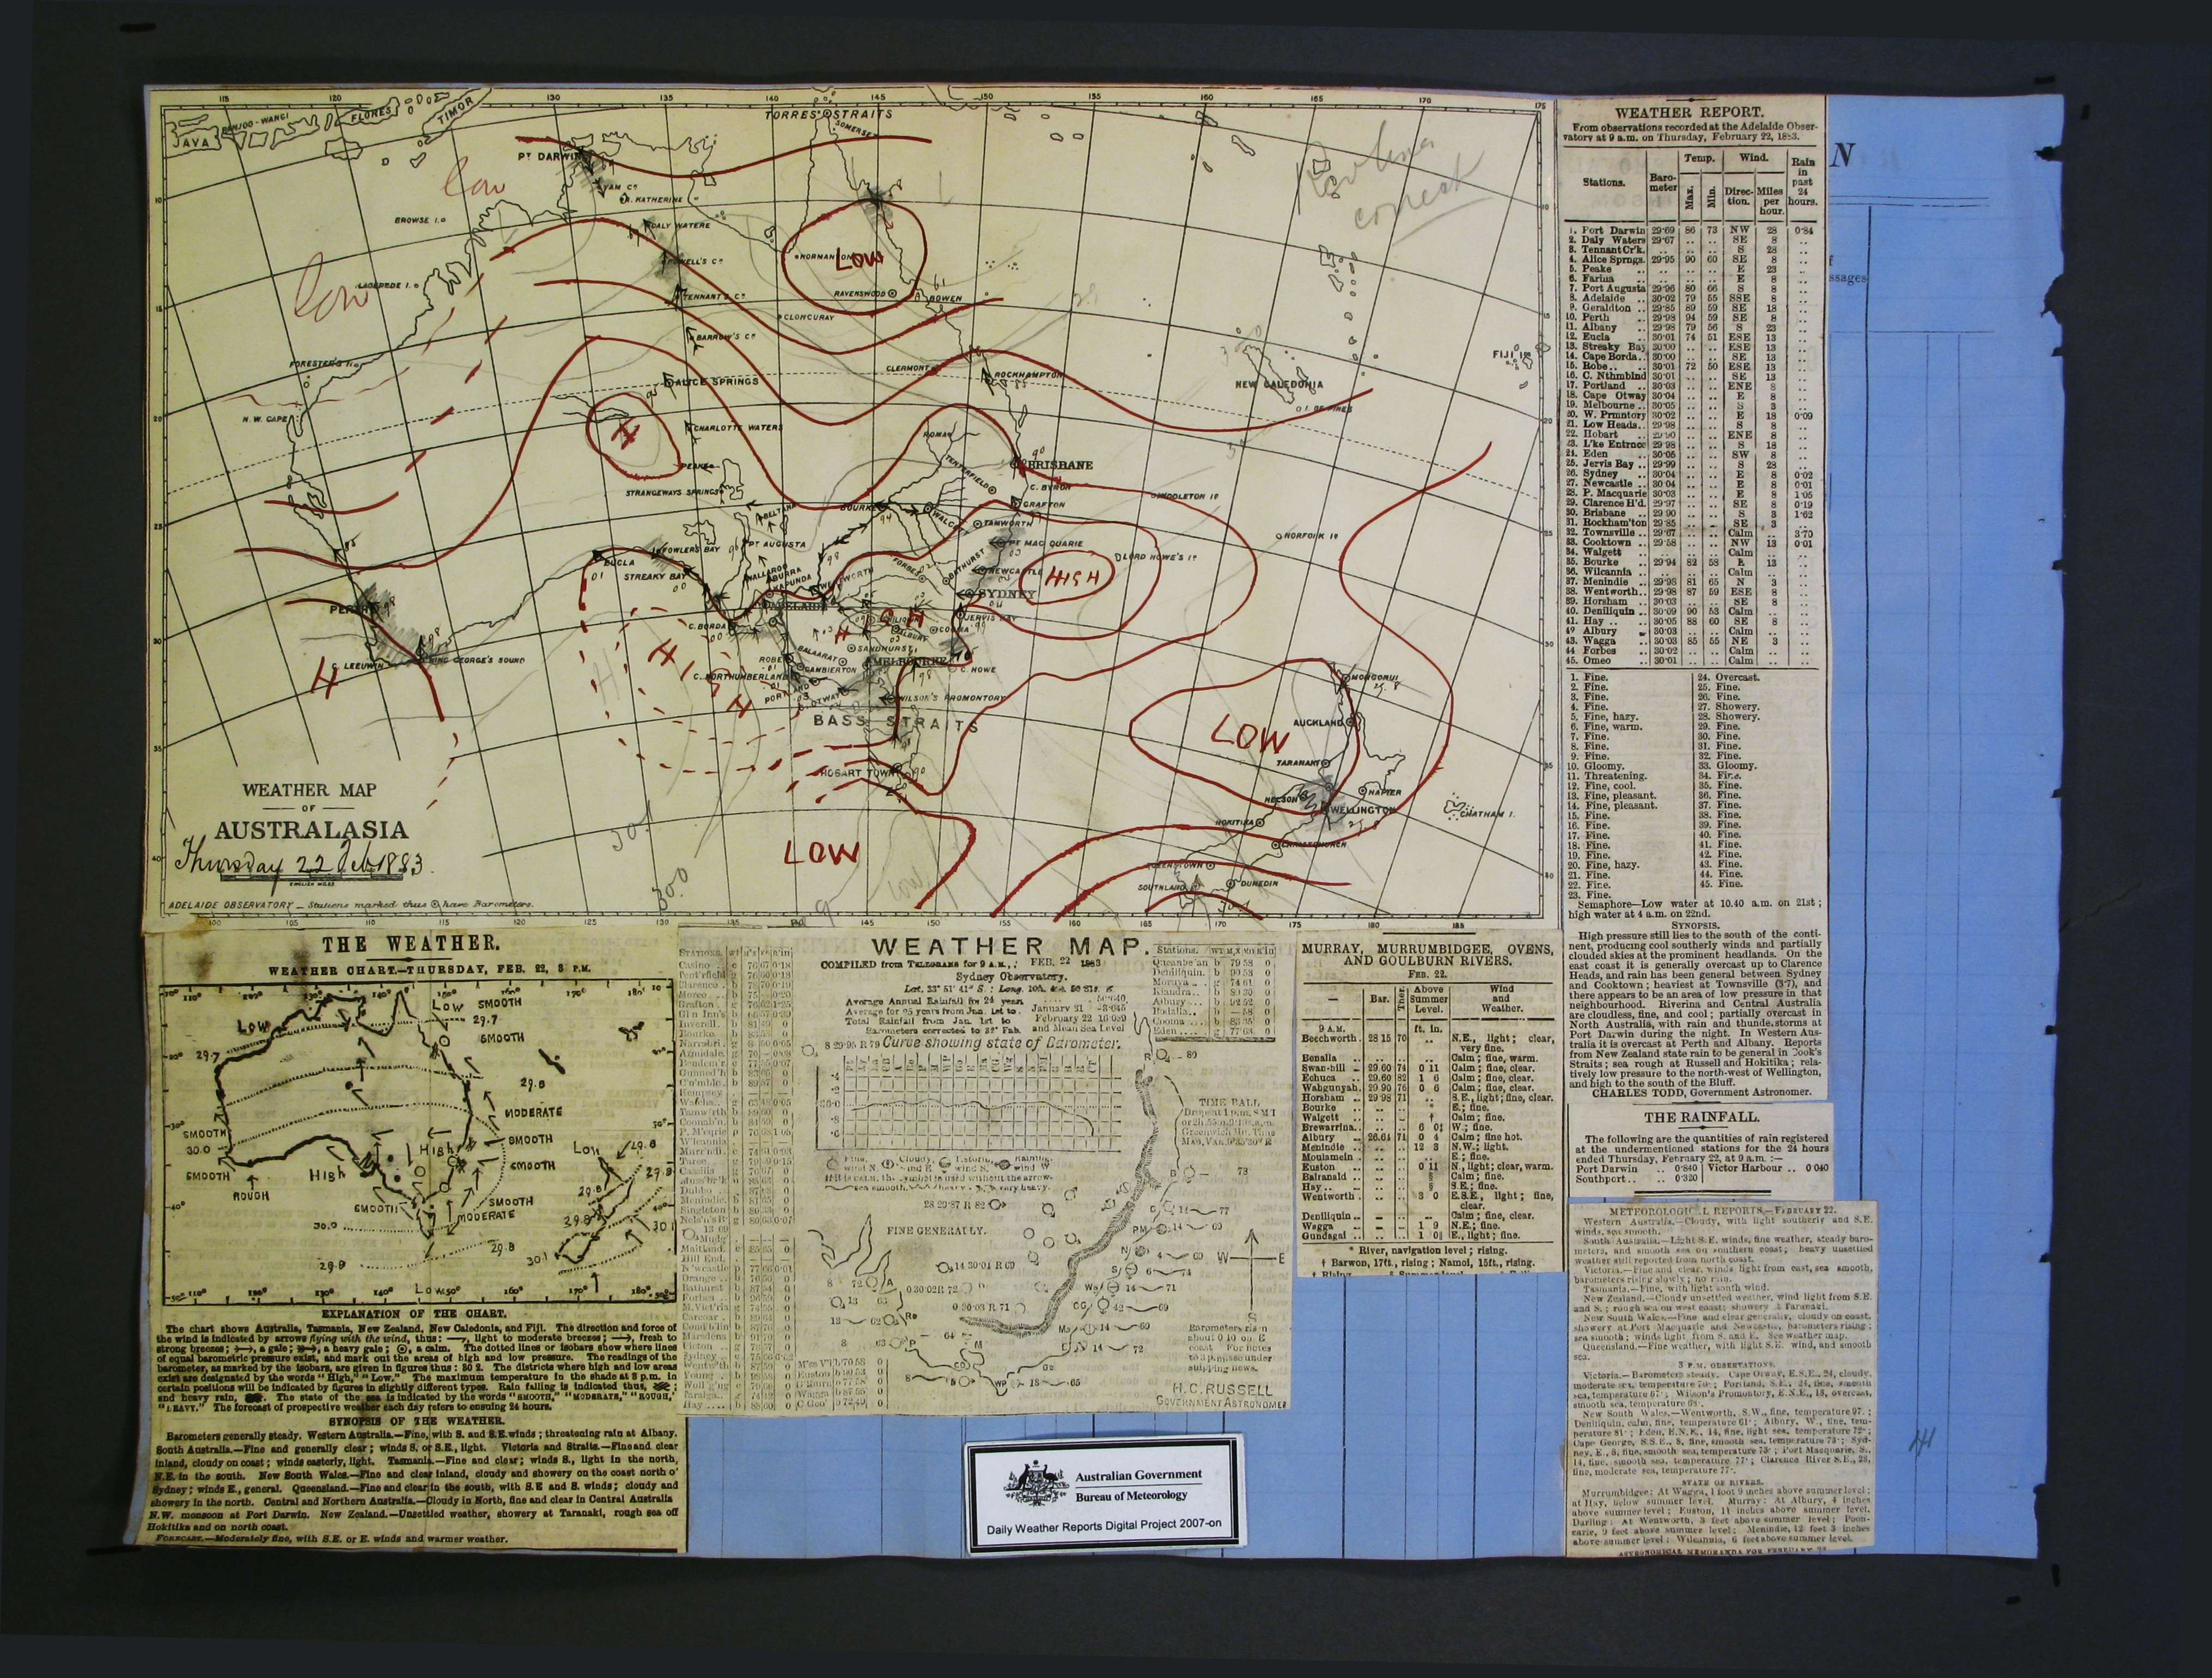 18830222c0900 Weather map